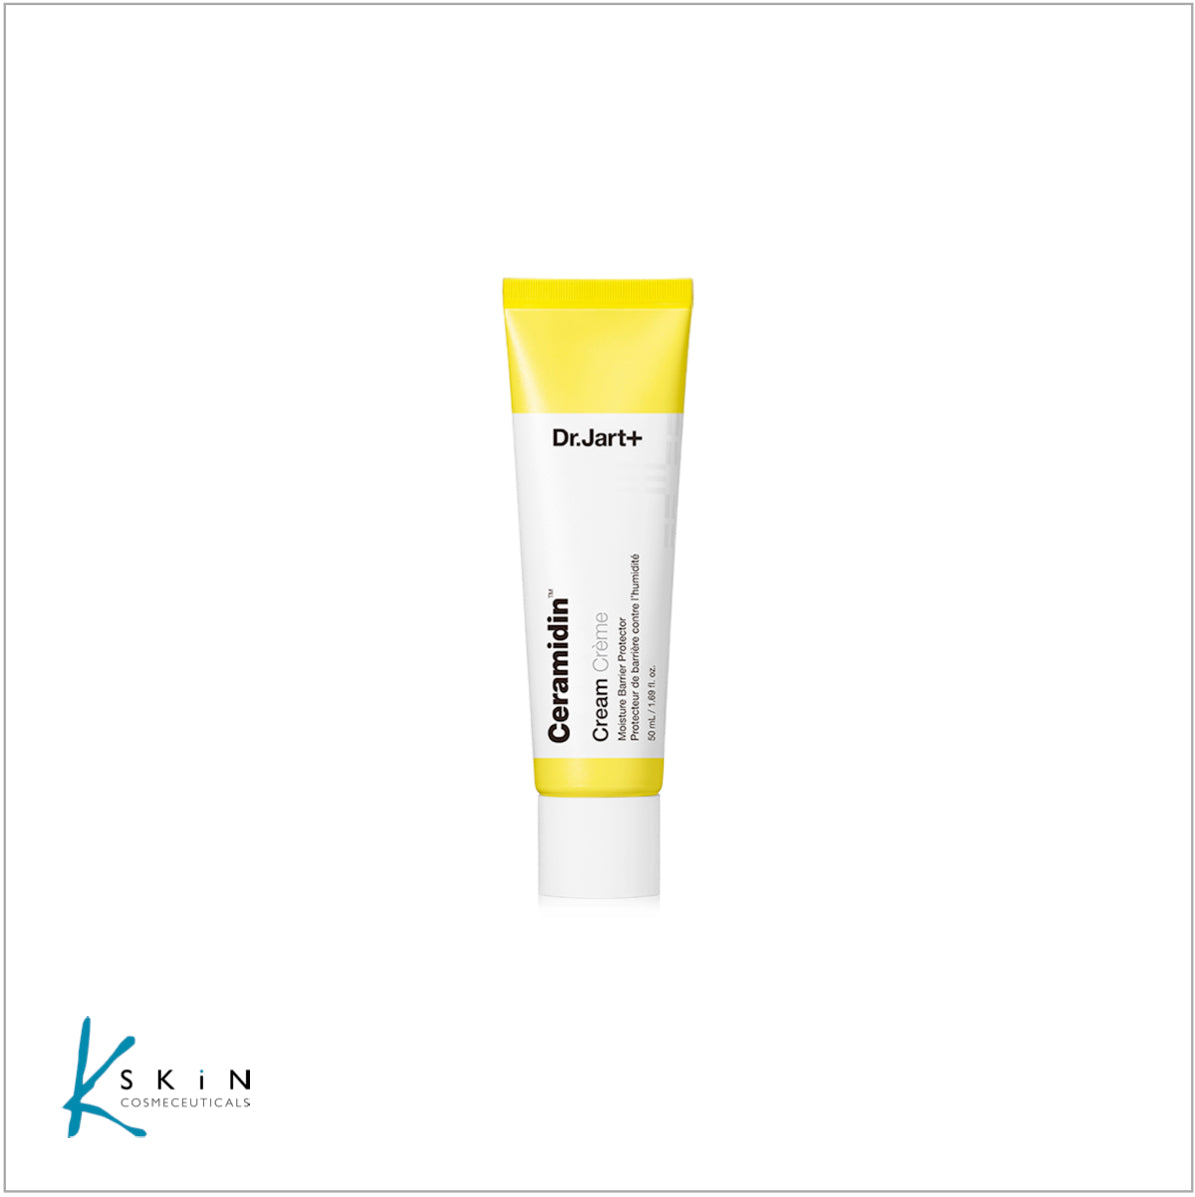 Dr. Jart+ Ceramidin™ Cream, 50ml - www.Kskin.ie